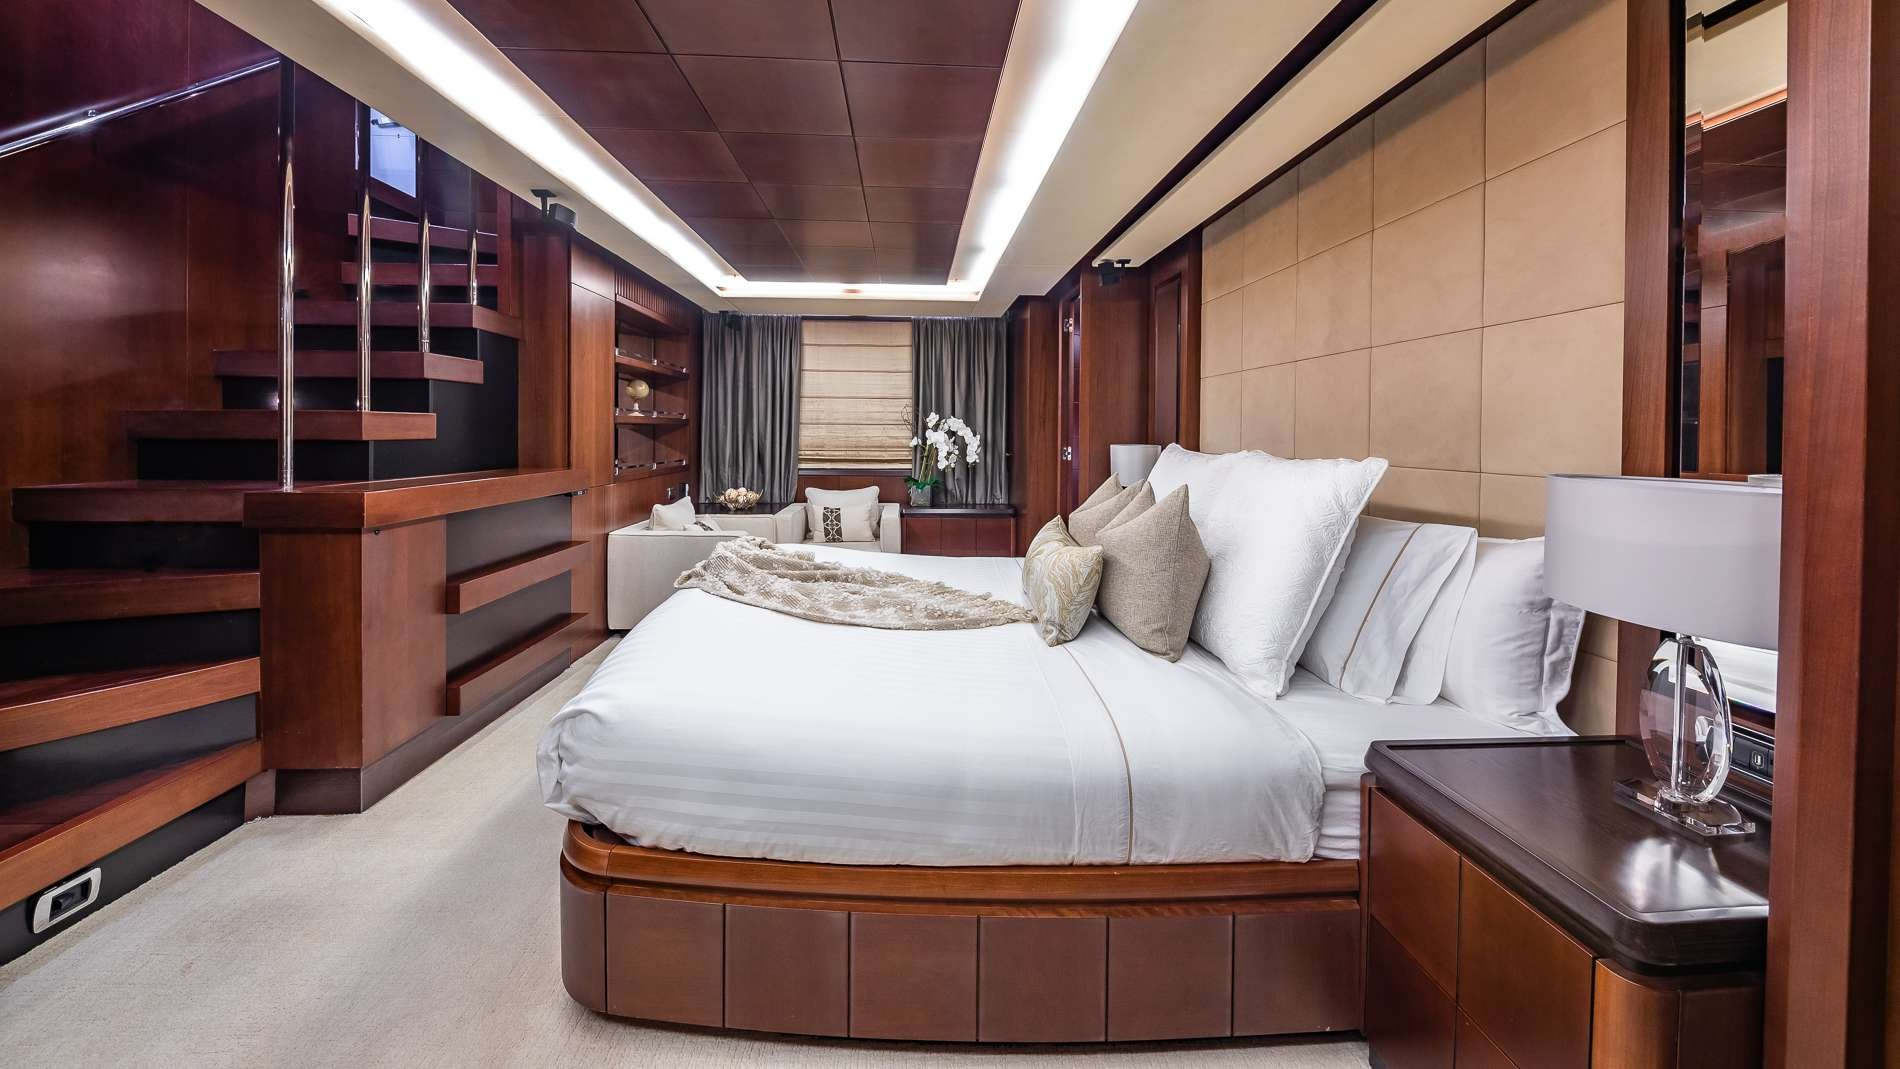 Motor Yacht 'TAIL LIGHTS' Master Stateroom, 12 PAX, 6 Crew, 116.00 Ft, 35.00 Meters, Built 2011, Azimut, Refit Year 2016